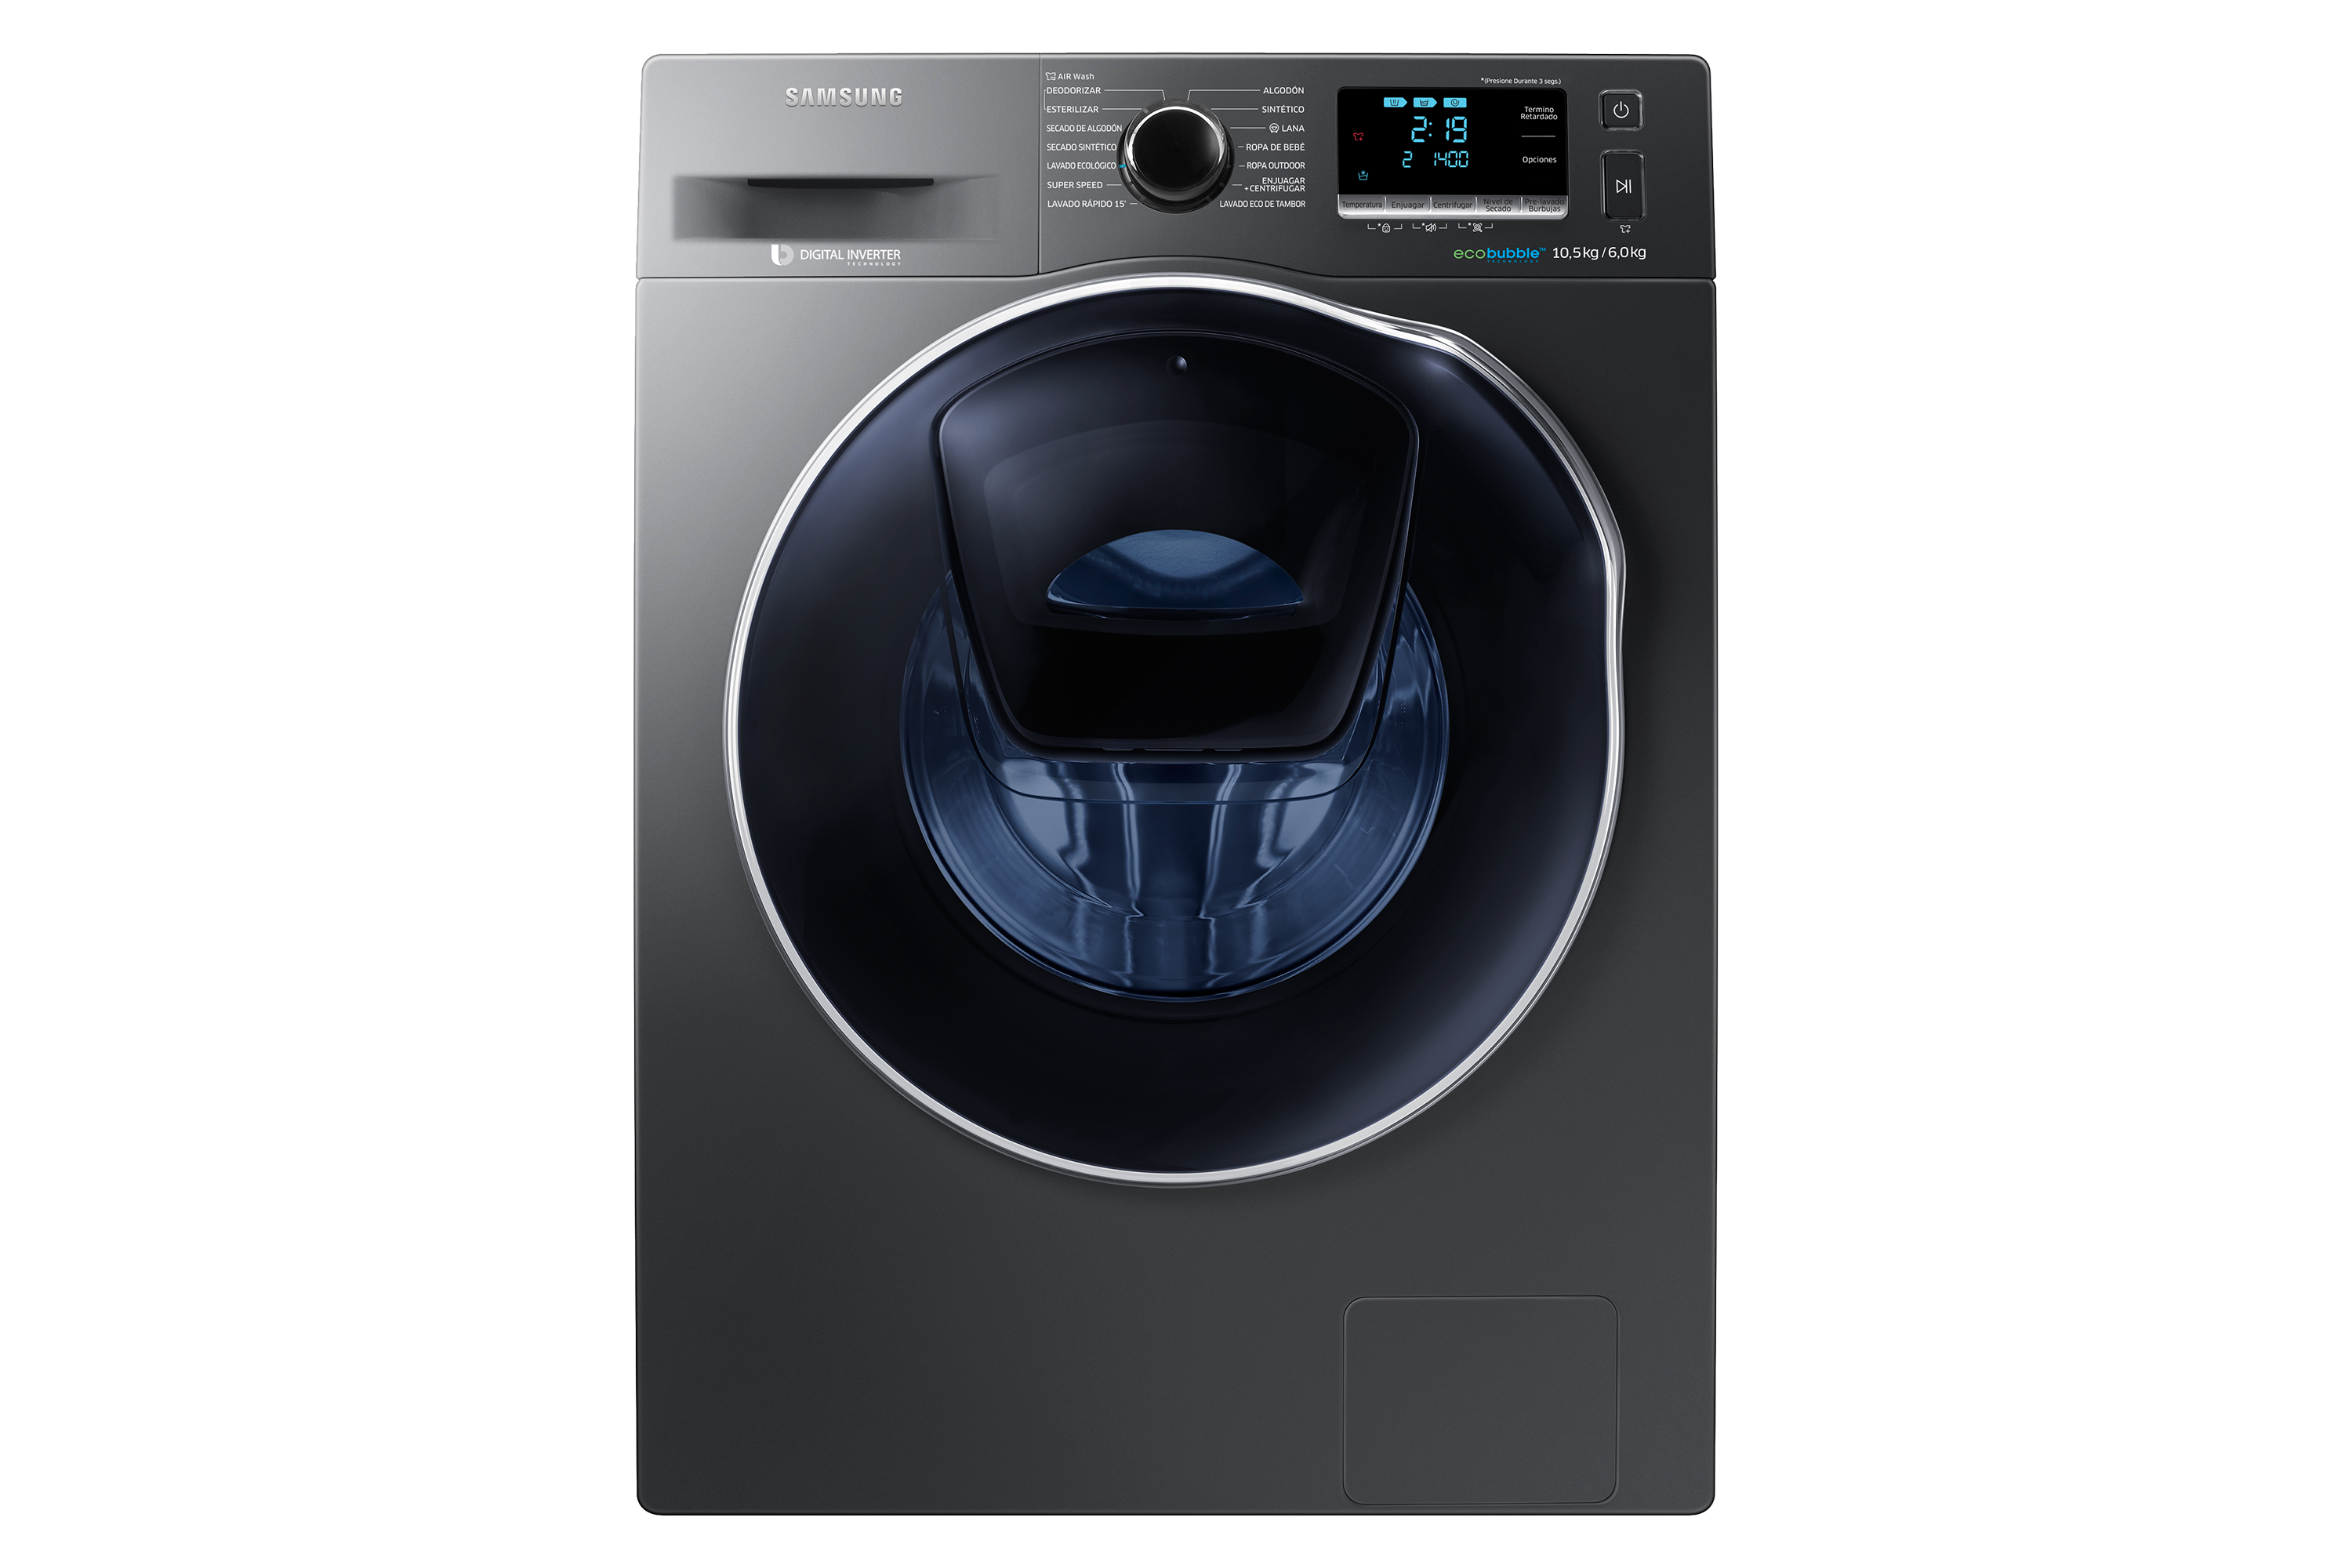 Lavasecarropas 10kg/6kg Digital Inverter con AddWash y AirWash, WD10K6410OX